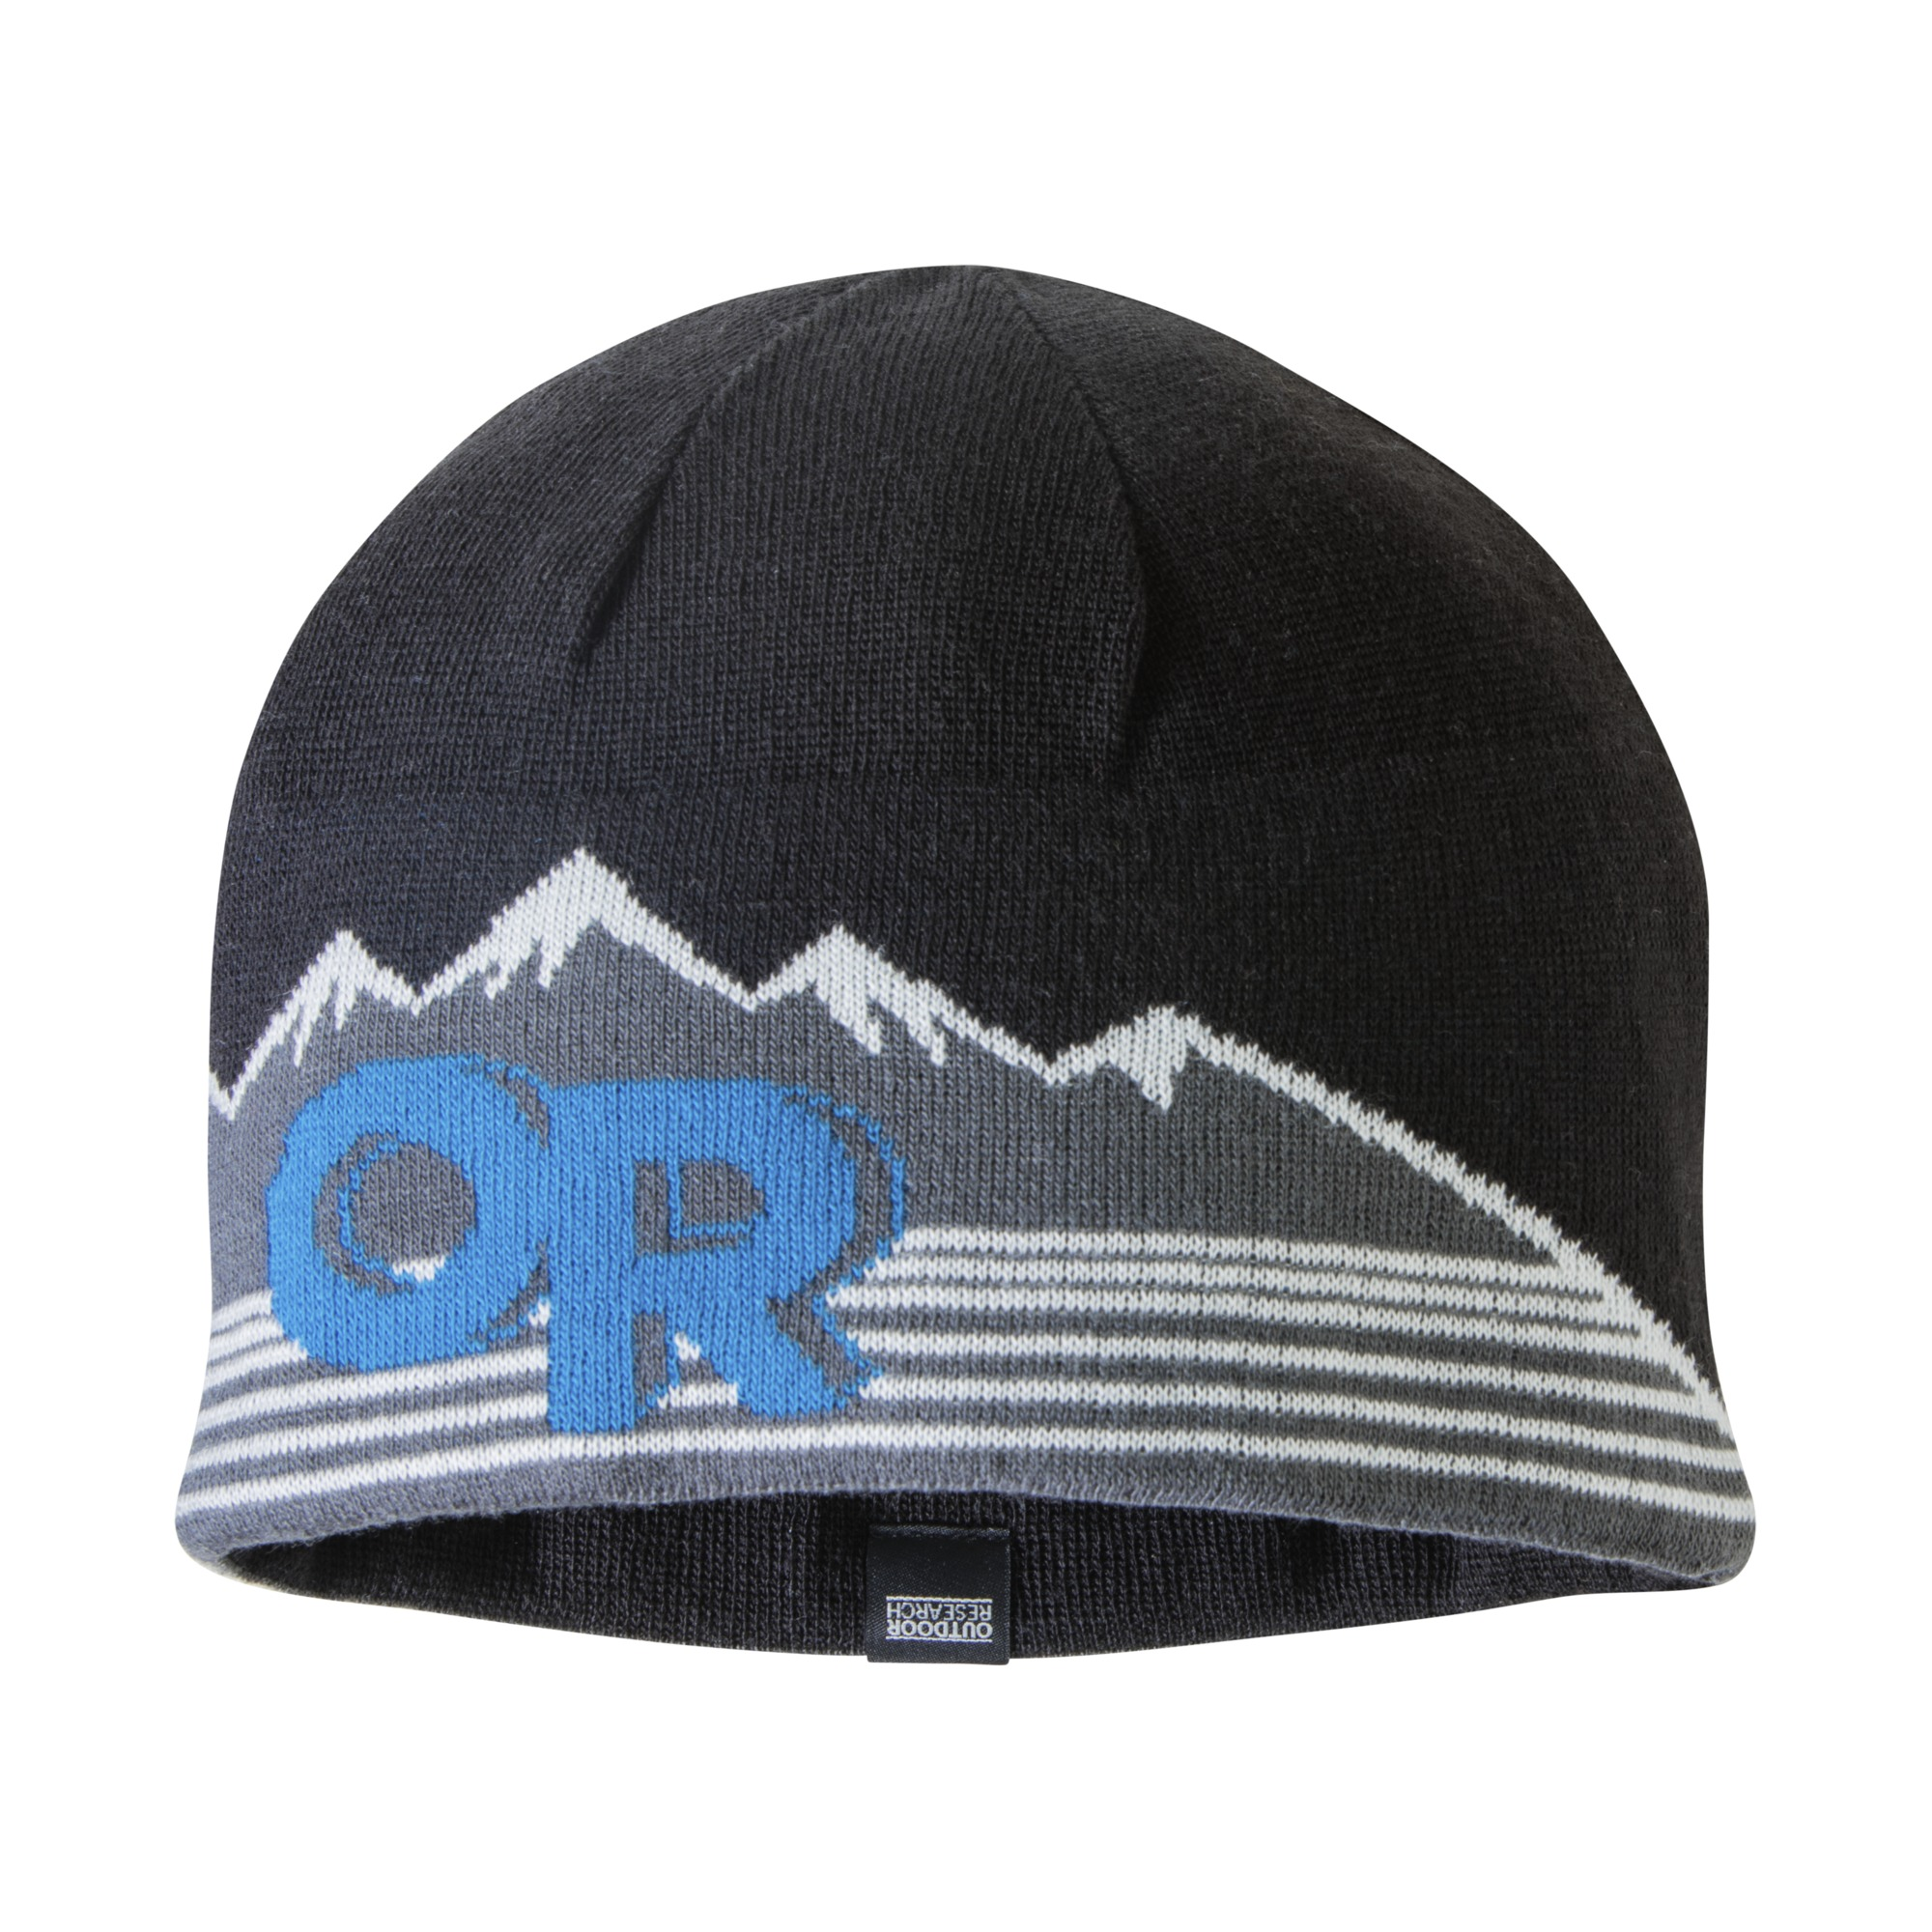 26c2d730e Advocate Beanie - black/tahoe | Outdoor Research